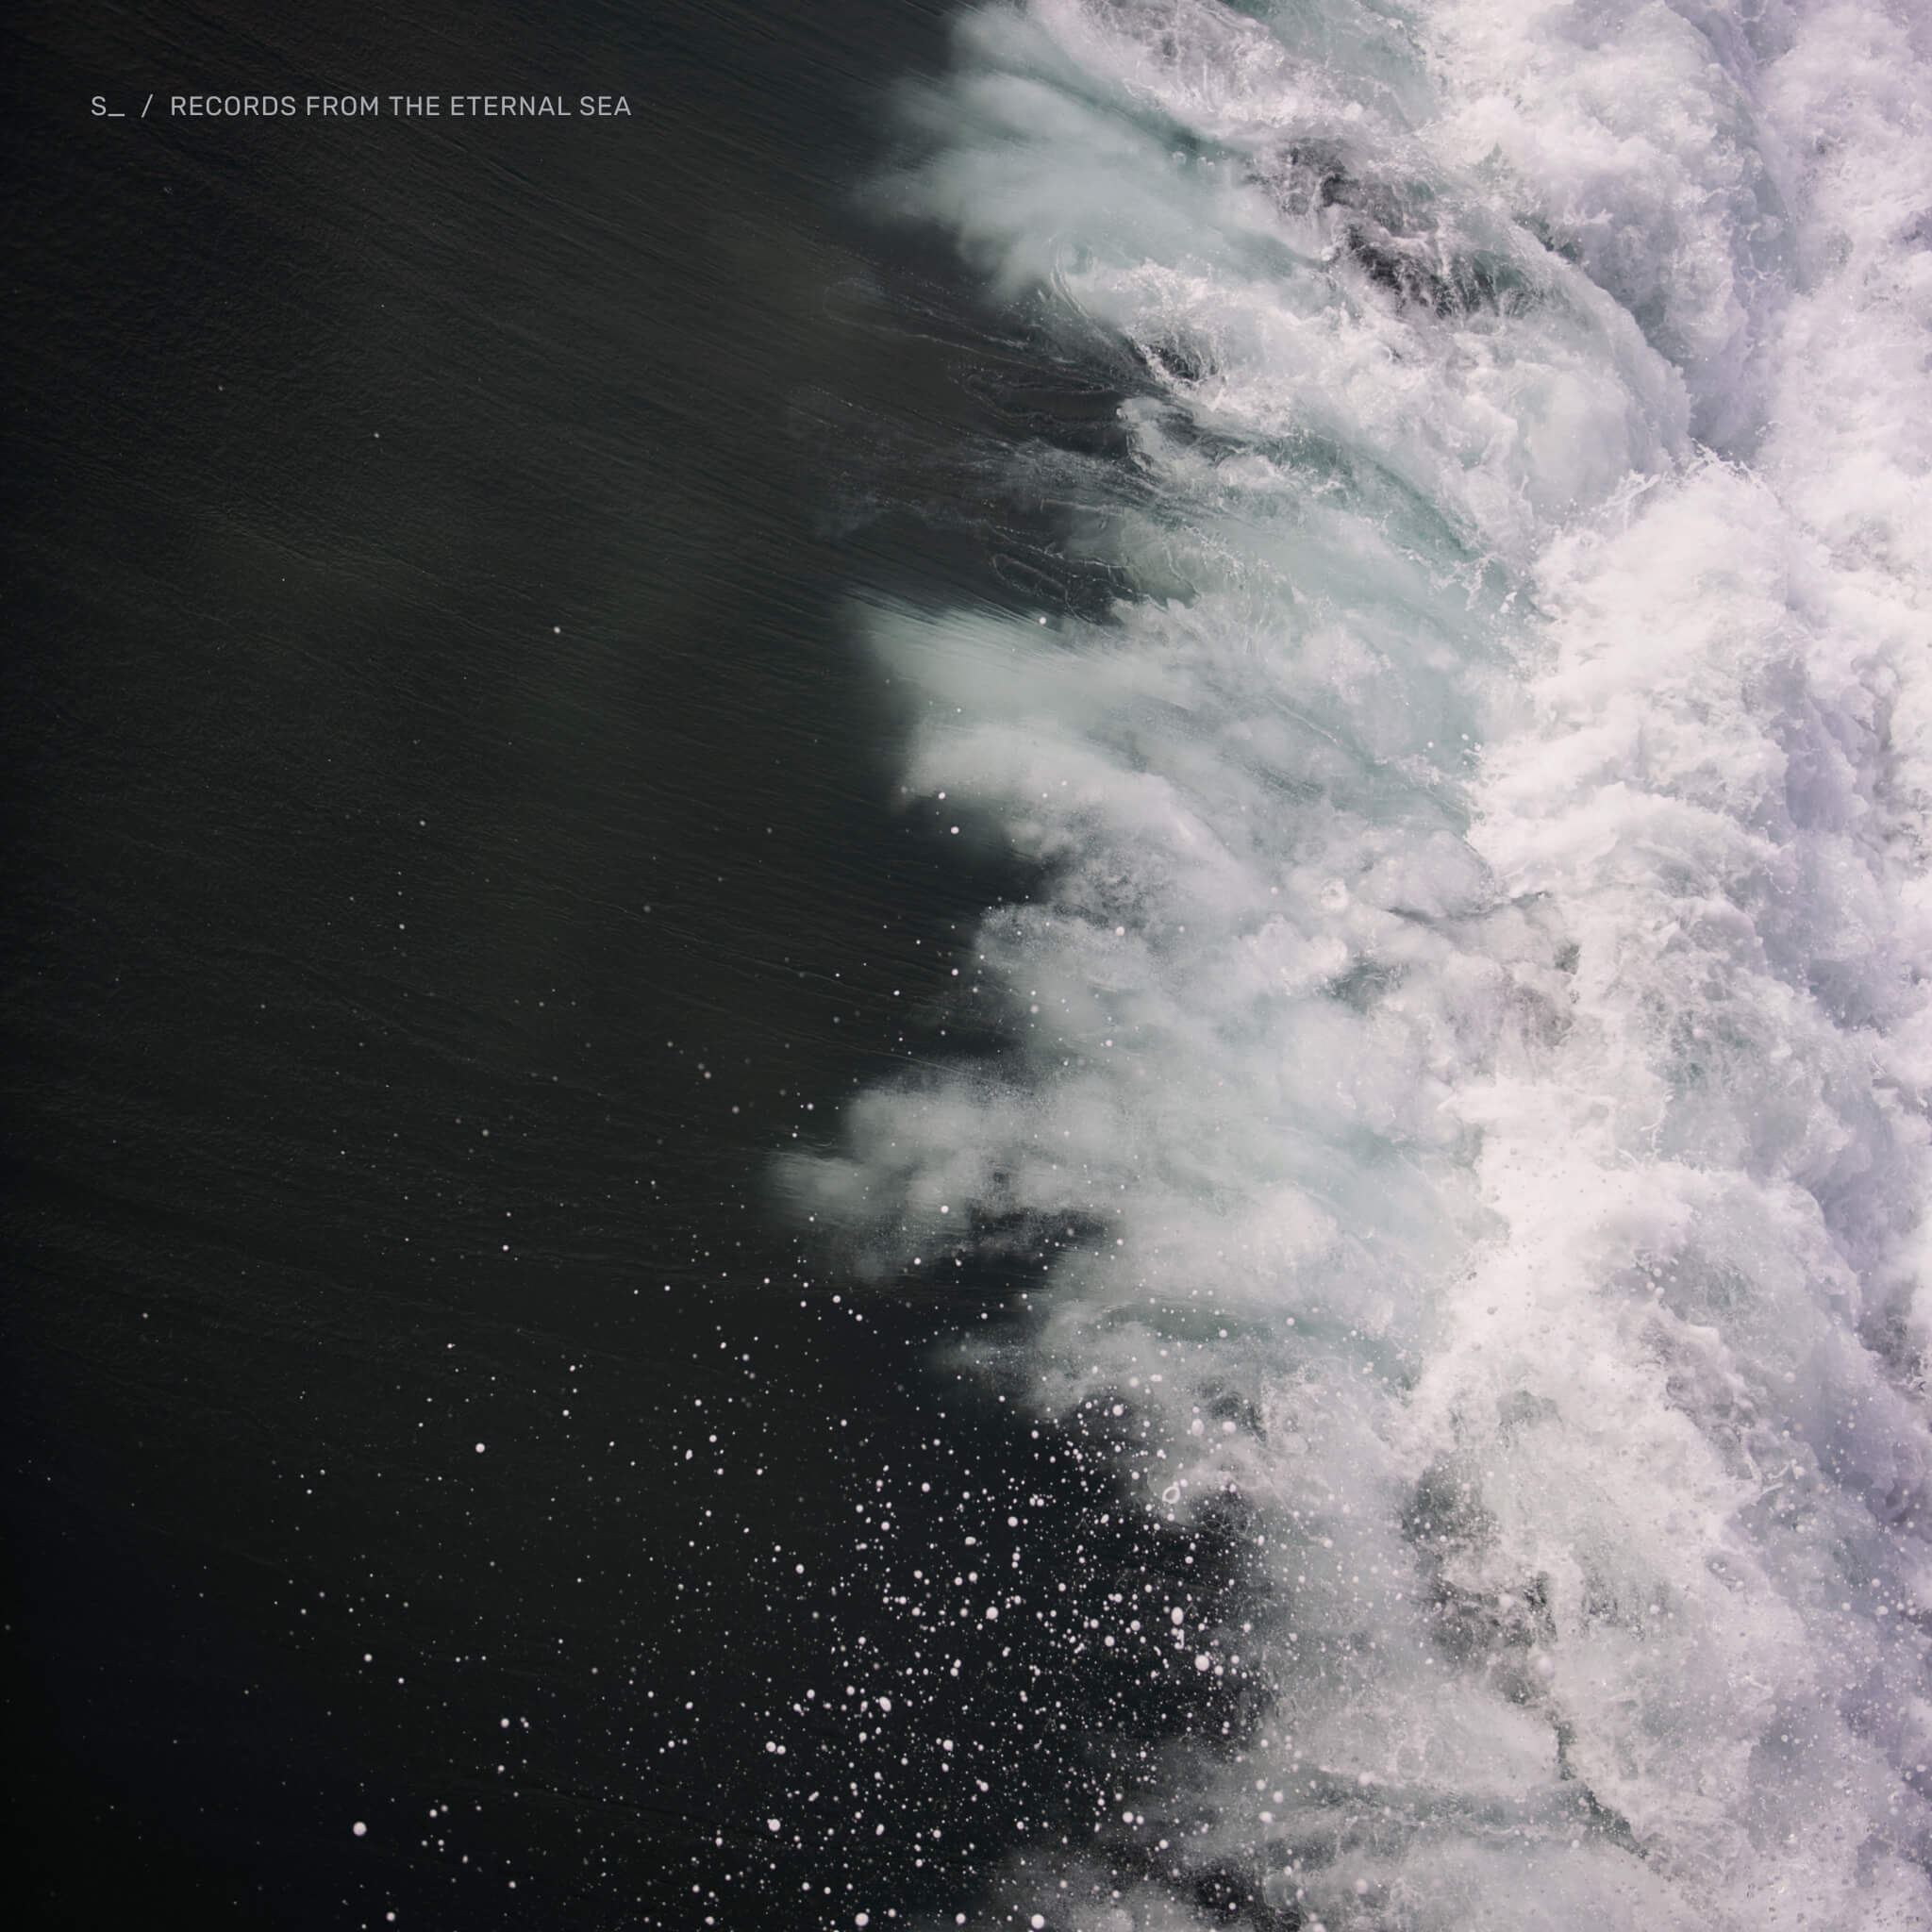 Album cover of Records From The Eternal Sea. Arial image of waves crashing on a stormy ocean.